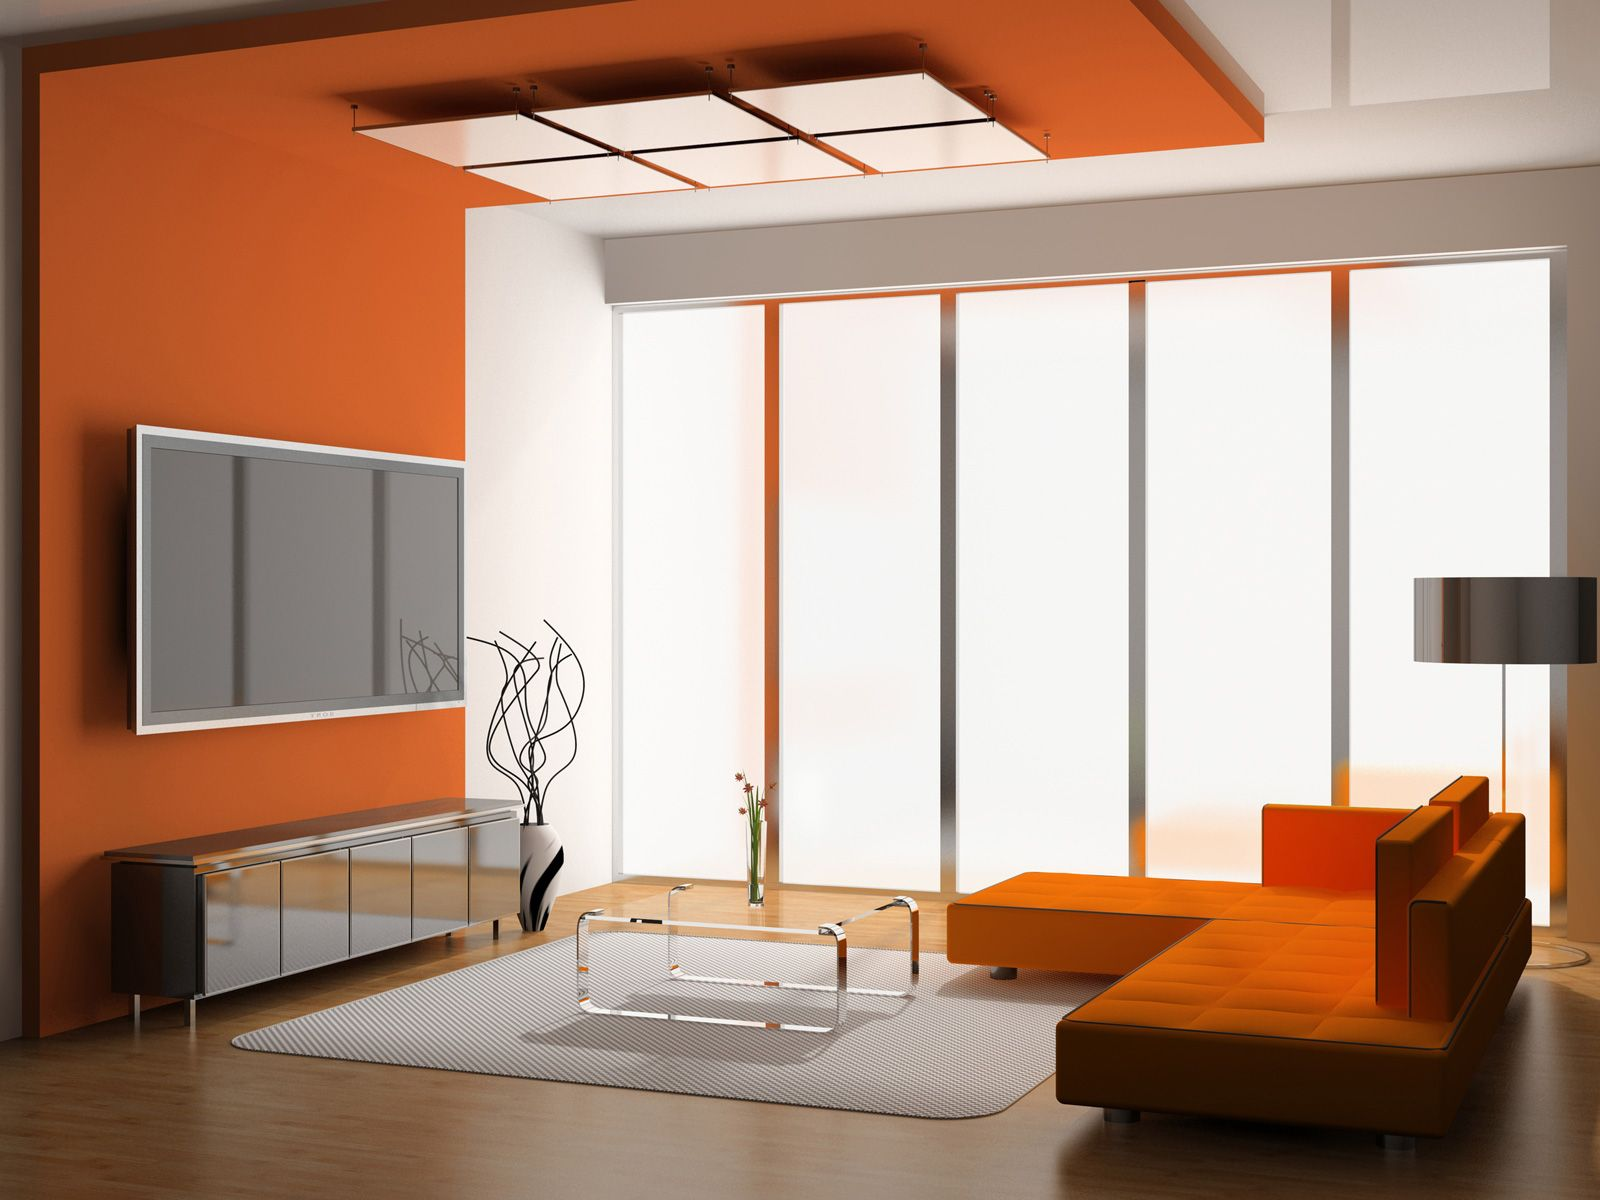 Living room paint ideas accent wall - Because Orange Is So Bold It S Common To Paint No More Than One Orange Accent Wall In A Room You Can Avoid Overdoing It And Still Manage To Pull The Room